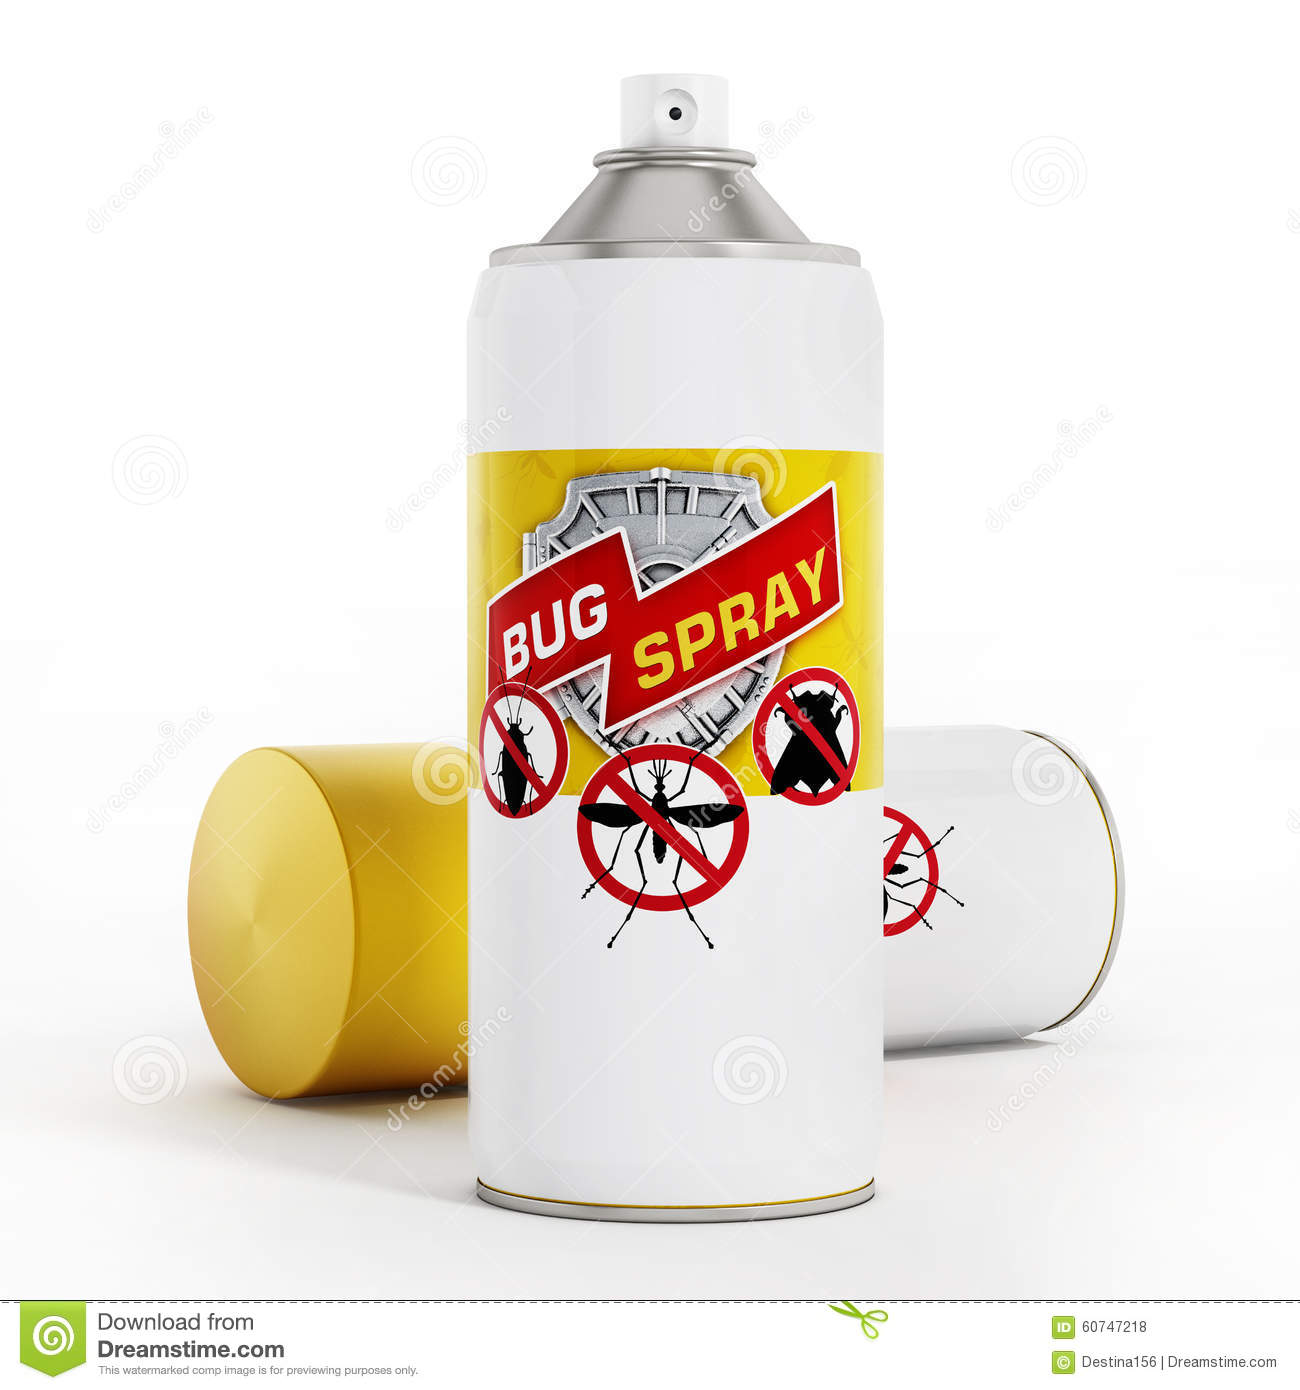 Sprays anti insectes illustration stock image 60747218 for Peinture anti insecte